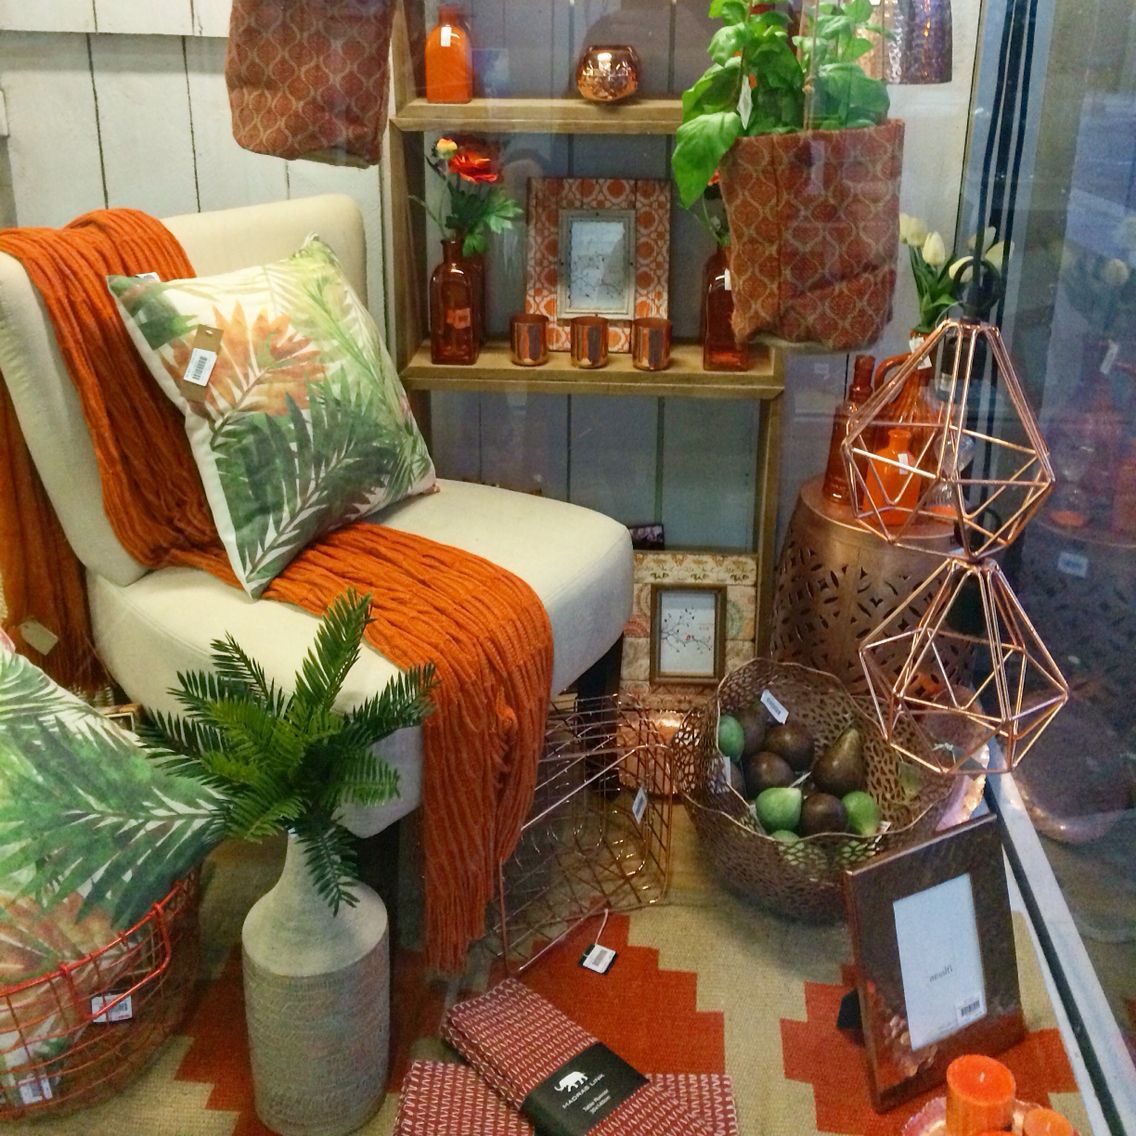 Orange And Copper Shop Display. New Window Display At Lavish Abode June 15.  Visual